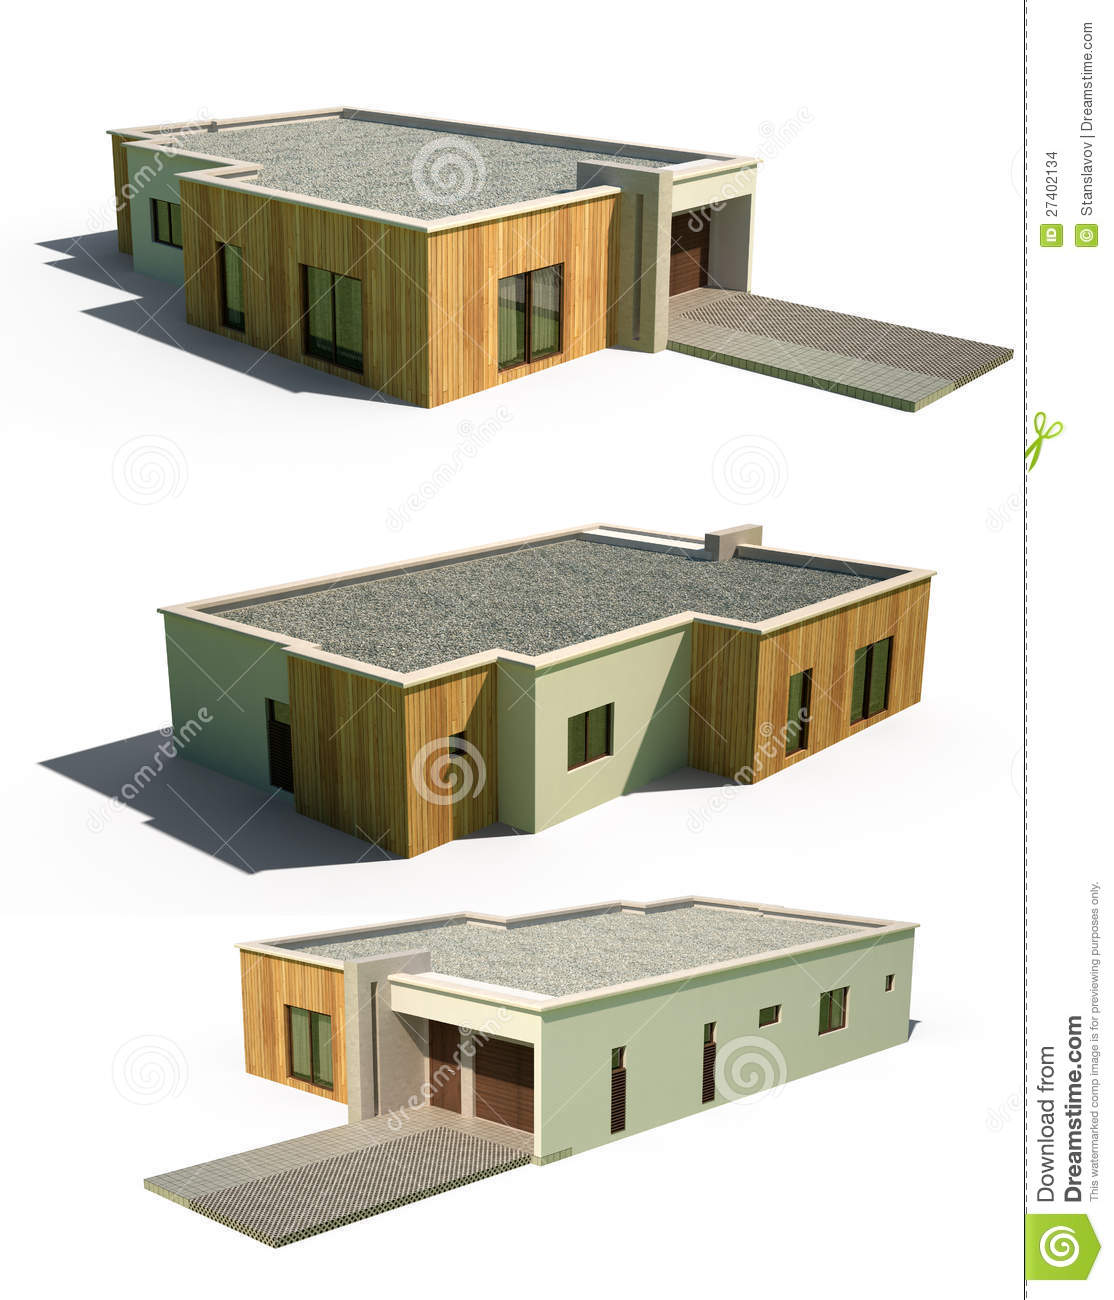 3d Home Design Deluxe 6 Free Download: 3d Modern House Facade Exterior Stock Illustration